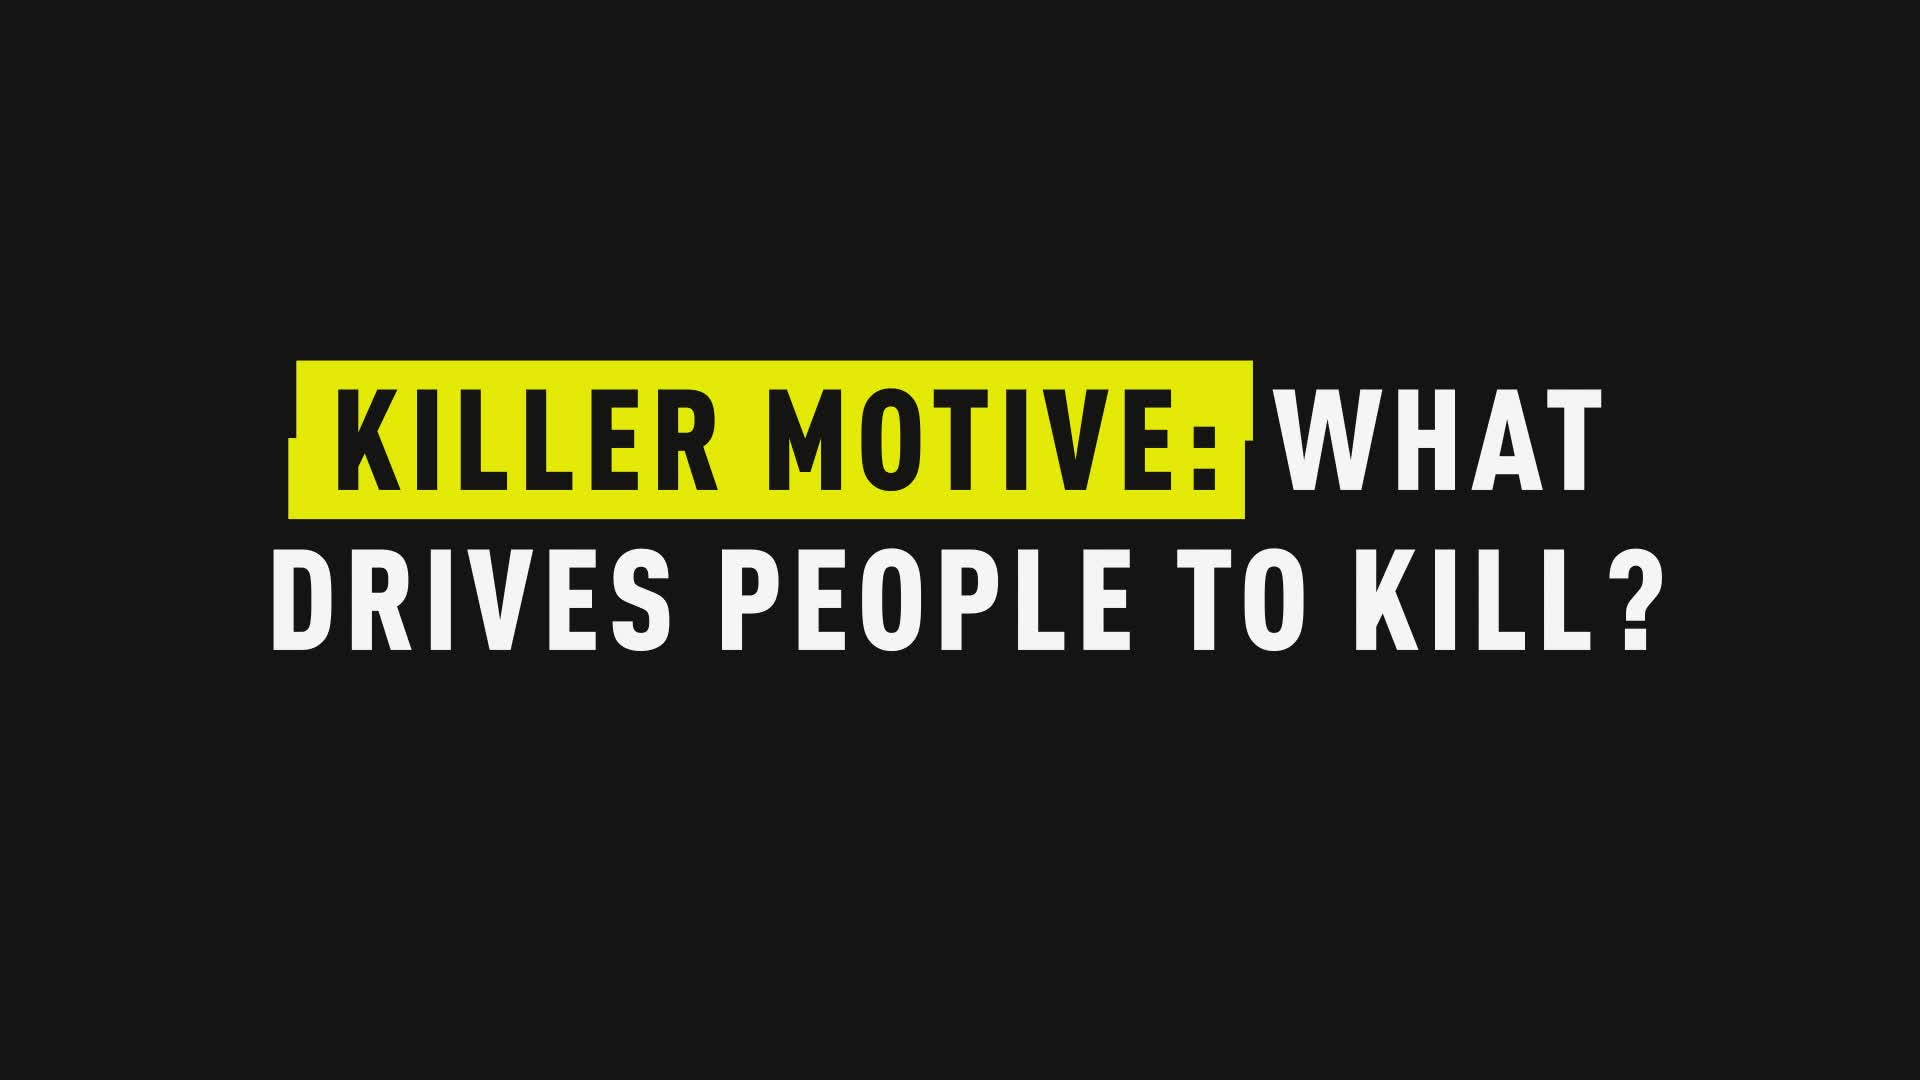 Killer Motive: What Drives People To Kill?